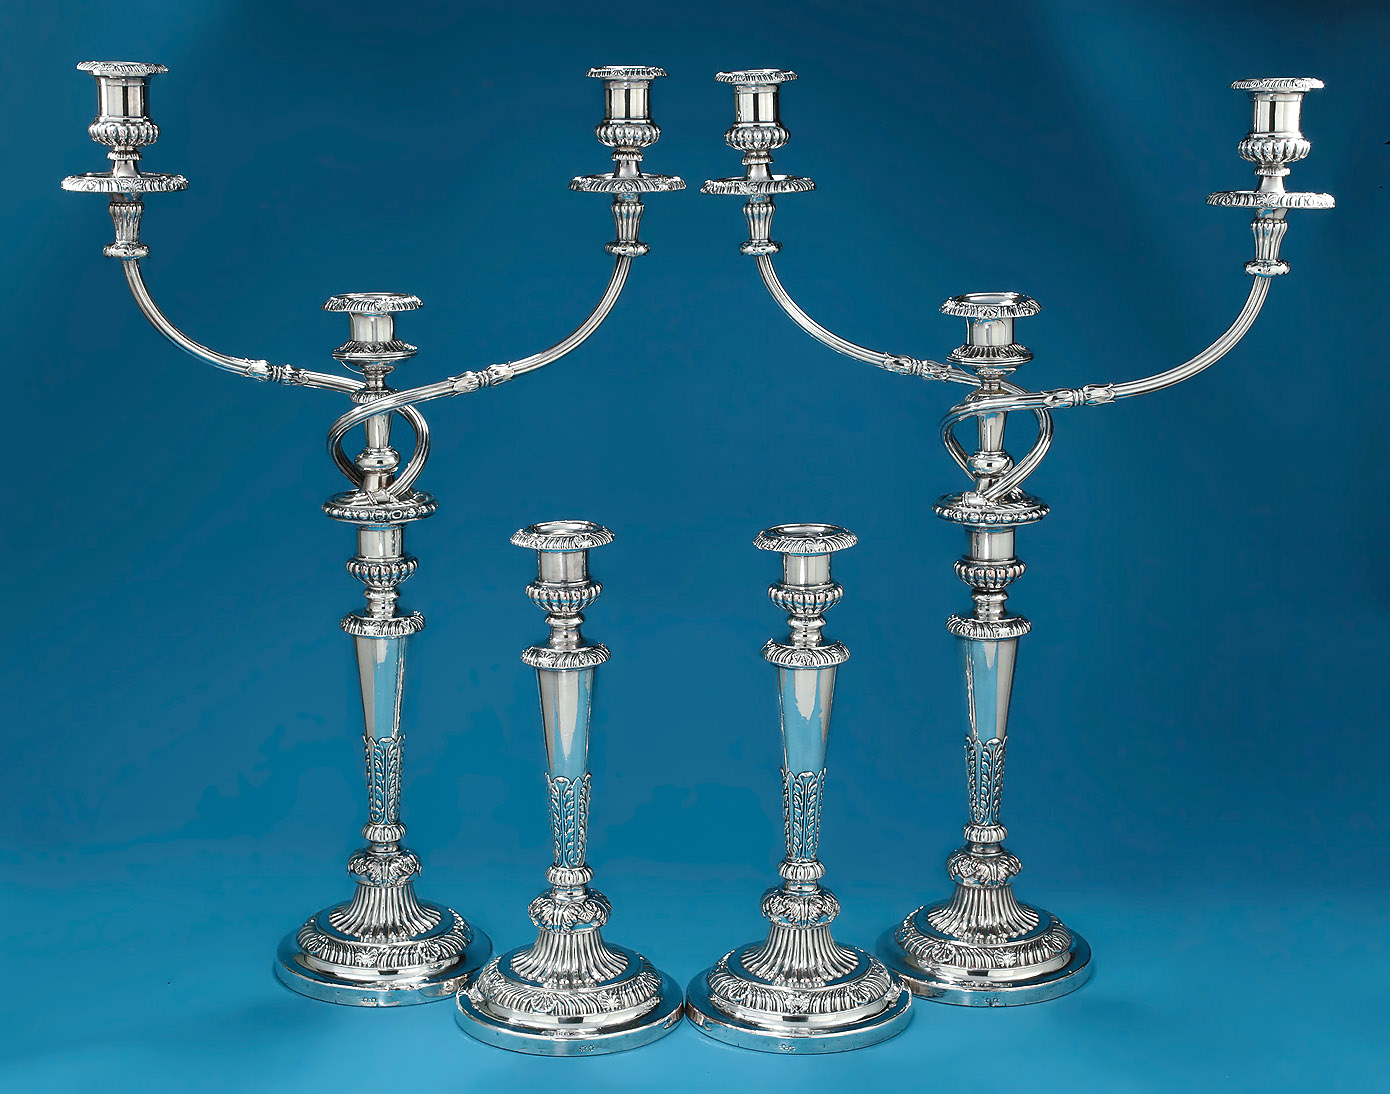 George III Set Old Sheffield Plate 3-Light Candelabra & Candlesticks, Matthew Boulton